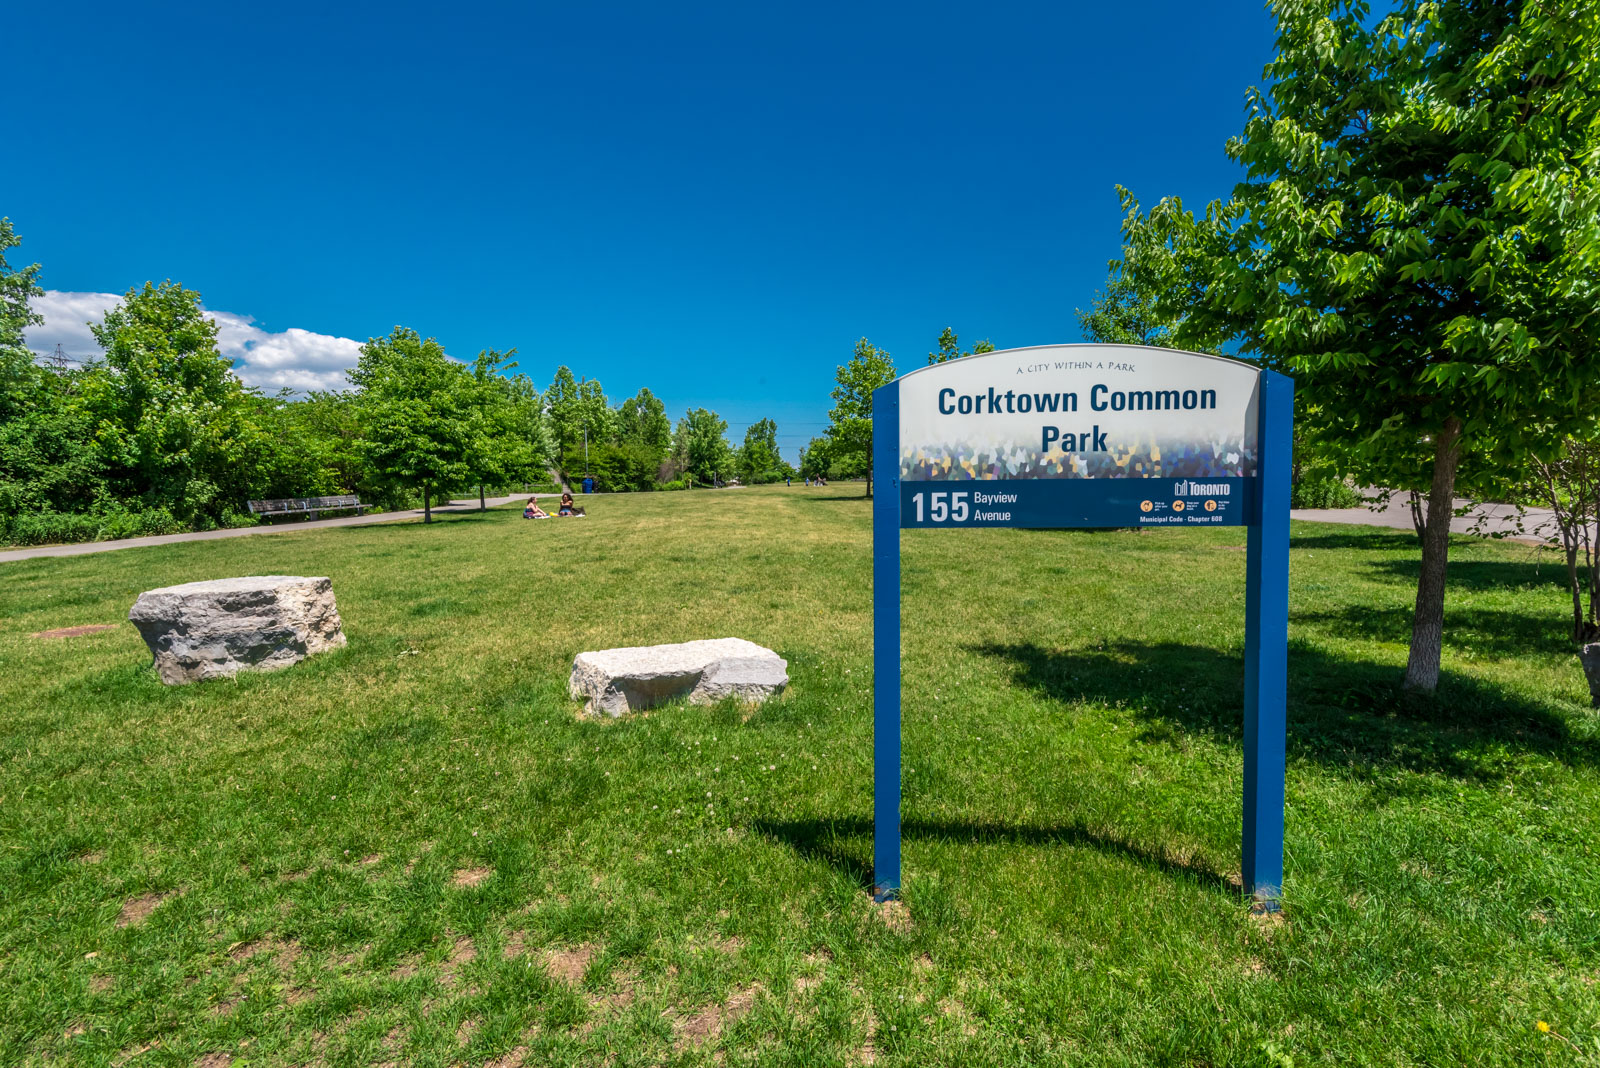 Picture showing Corktown Common Park and people. We see the park sign and also beautiful green grass.